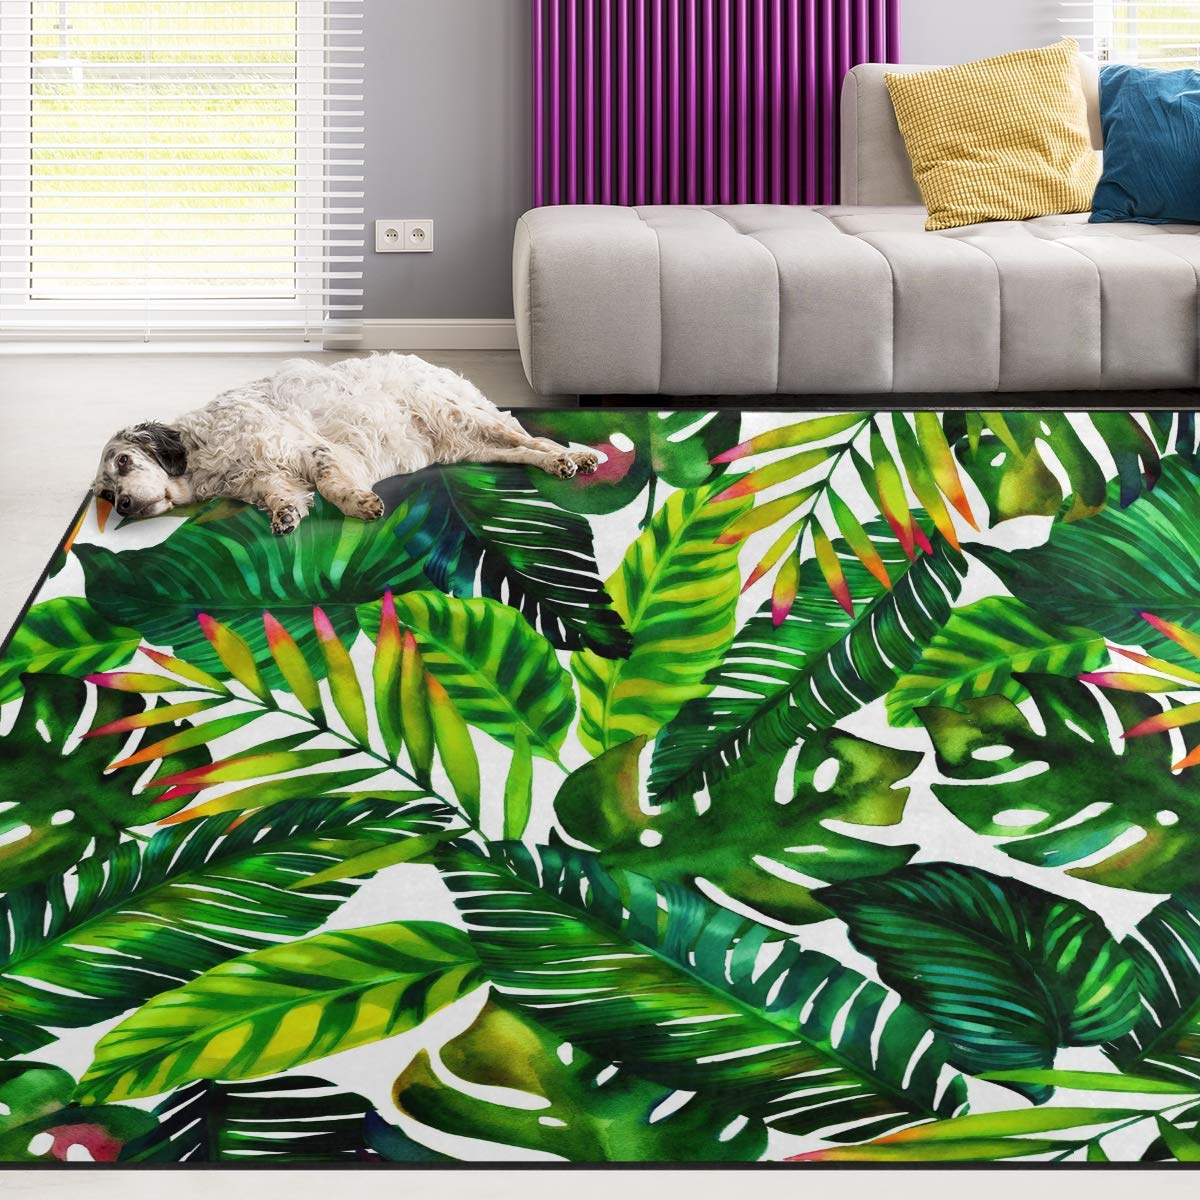 Naanle Palm Leaf Non Slip Area Rug for Living Dinning Room Bedroom Kitchen, 4' x 6'(48 x 72 Inches), Watercolor Tropical Leaf Nursery Rug Floor Carpet Yoga Mat